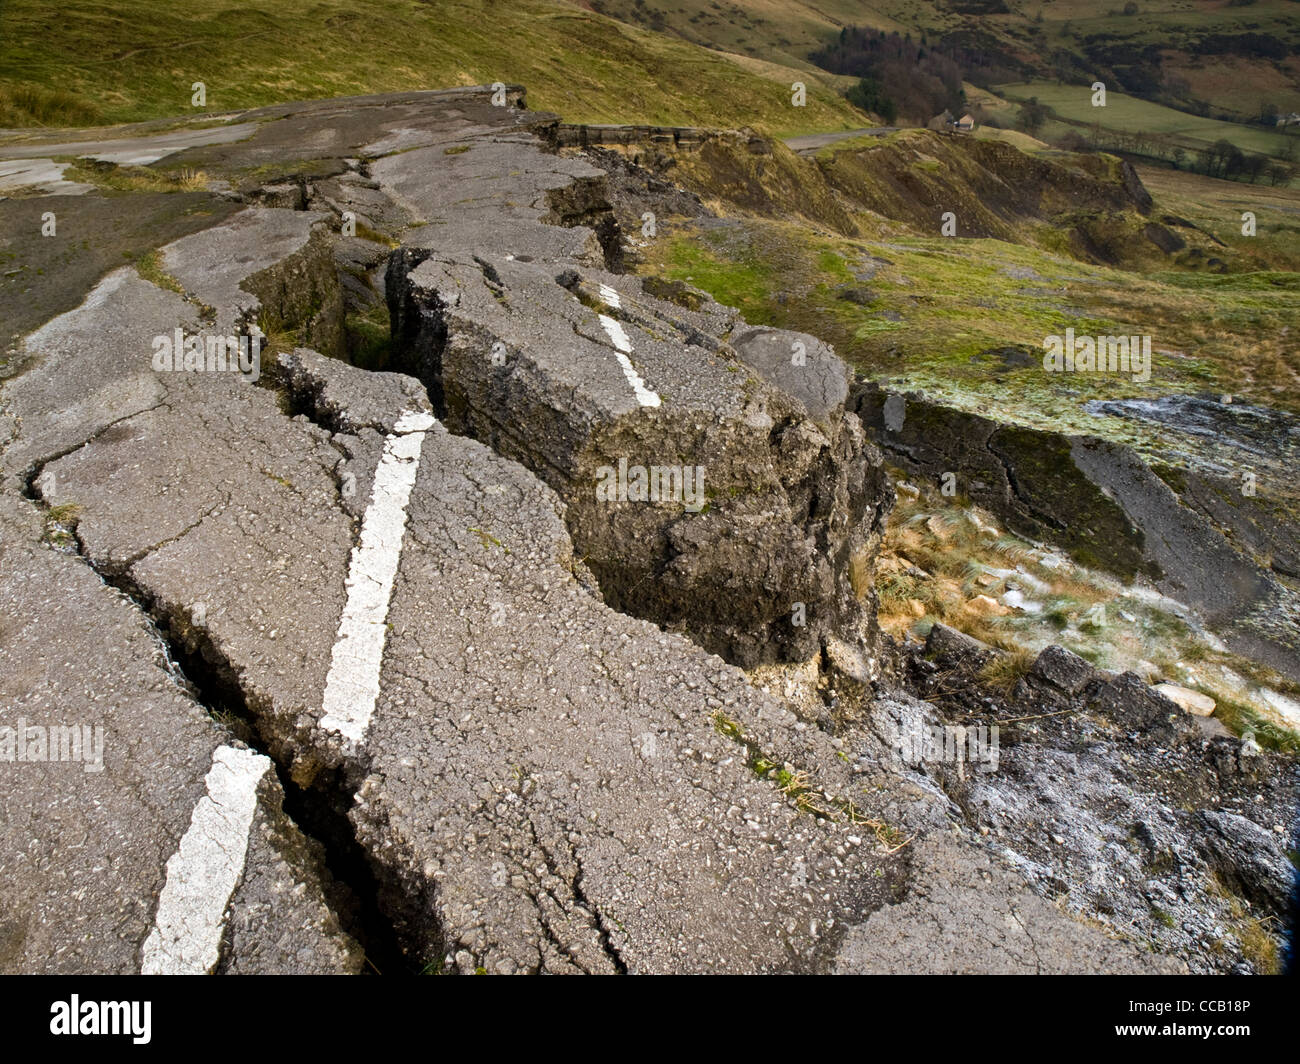 remains of tarmac road on slopes of Mam Tor, Castleton, Peak District National park, UK. The road was abandoned - Stock Image